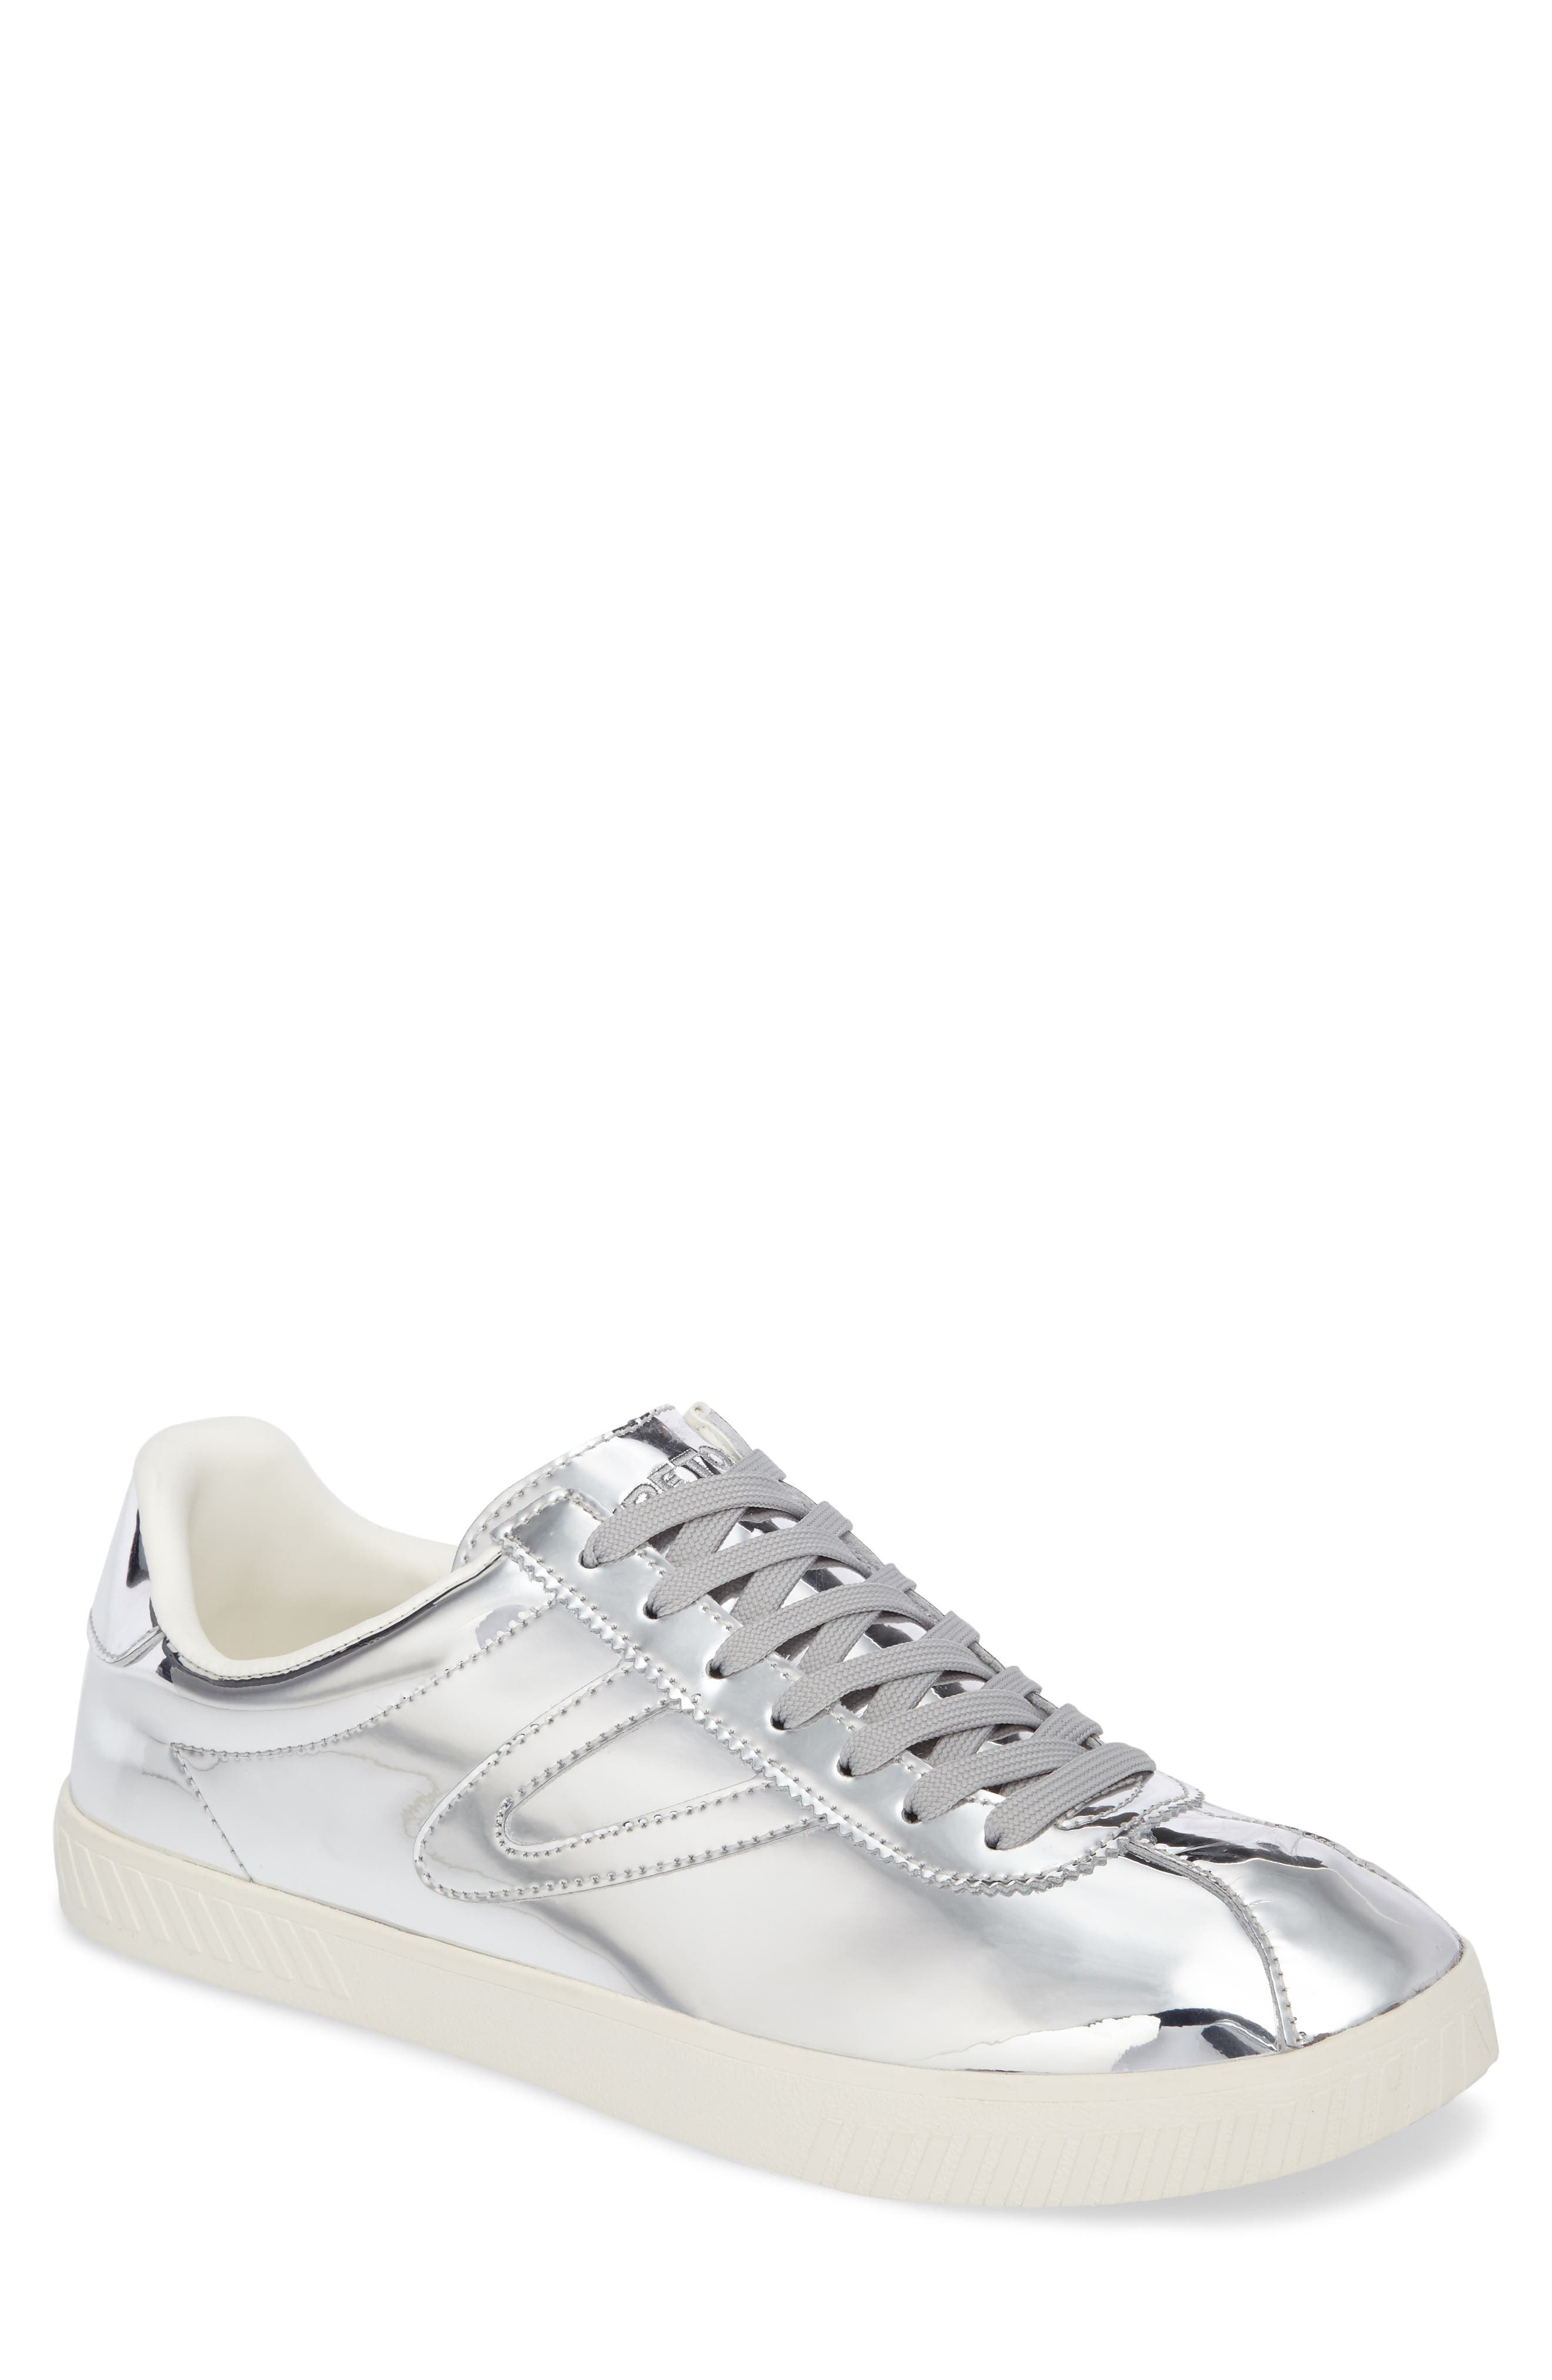 Camden 2 Sneaker,                         Main,                         color, SILVER LEATHER